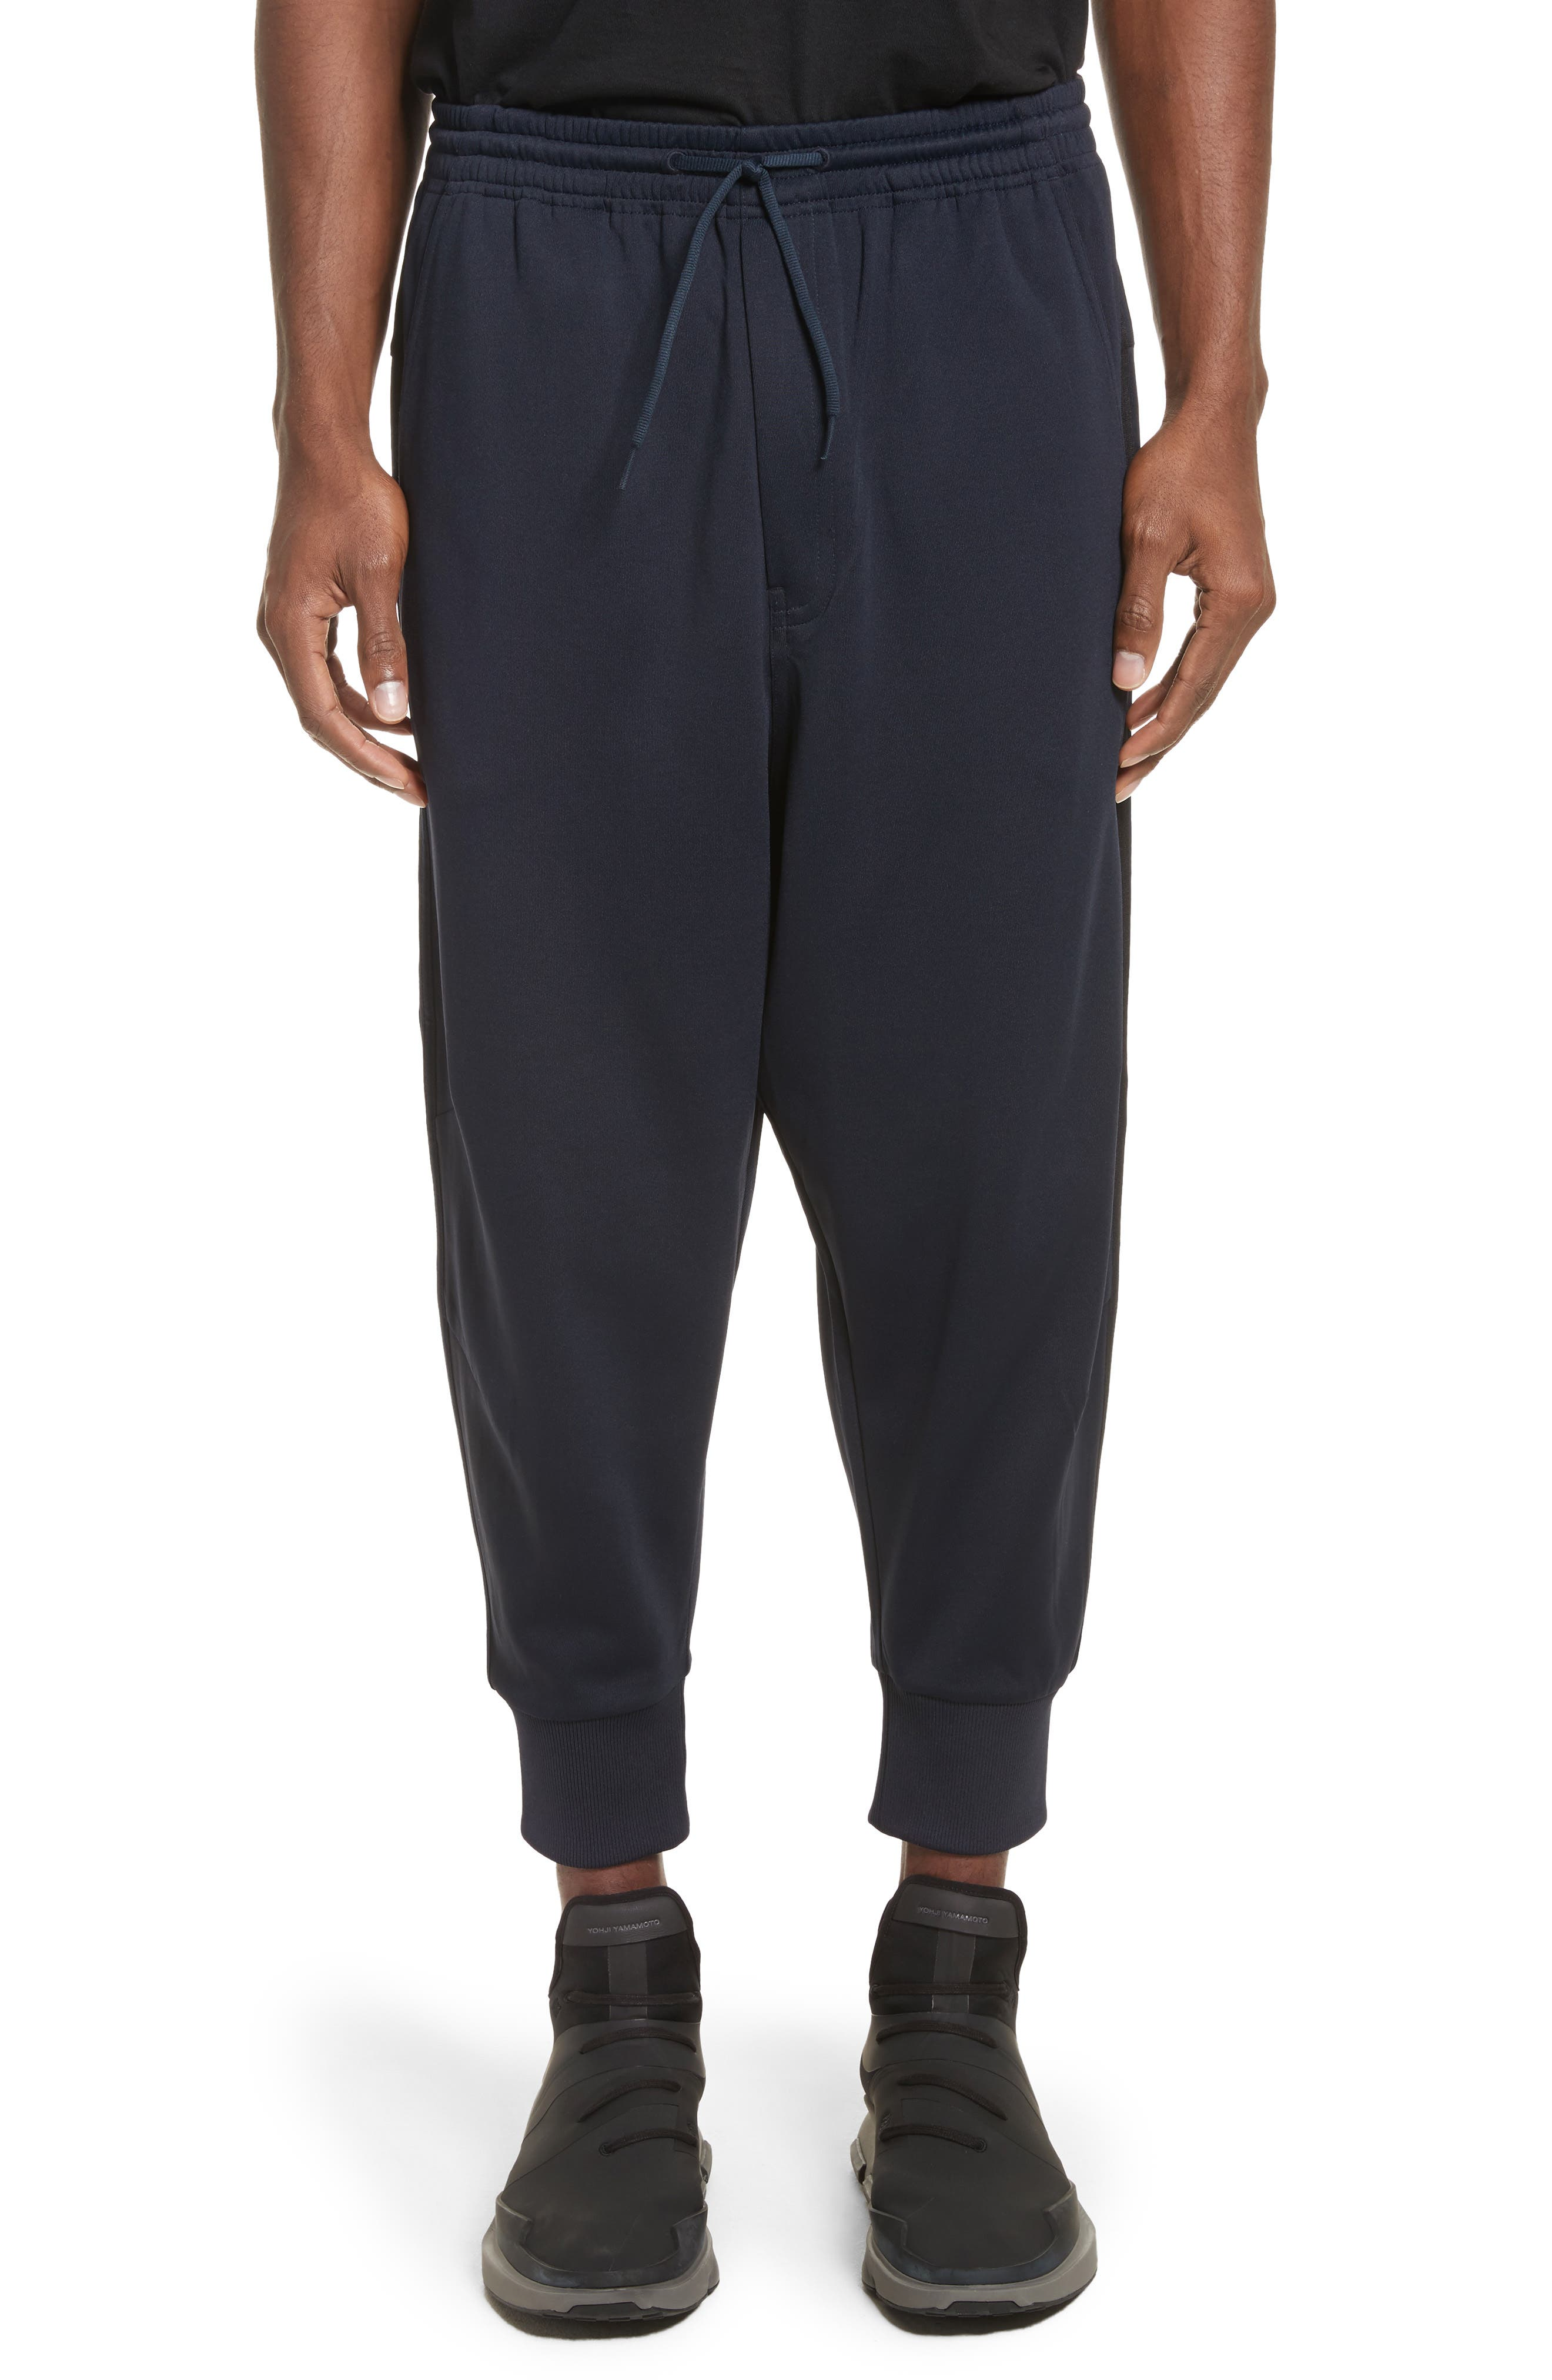 Y-3 x adidas Cropped Track Pants